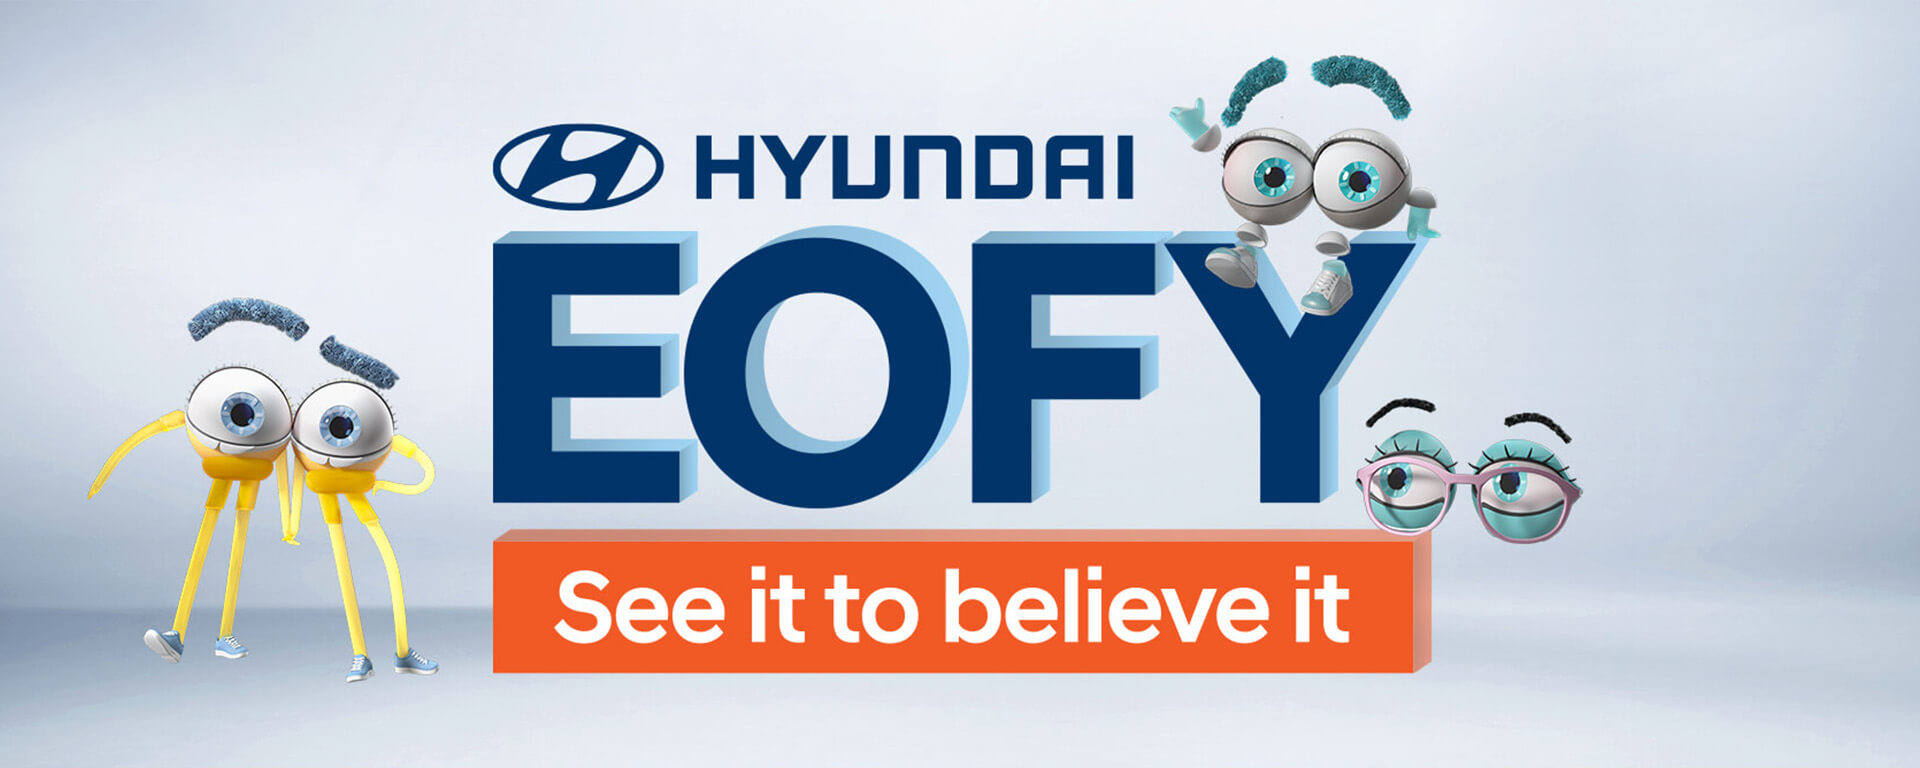 Hyundai EOFY. See it to believe it in our Offers section.